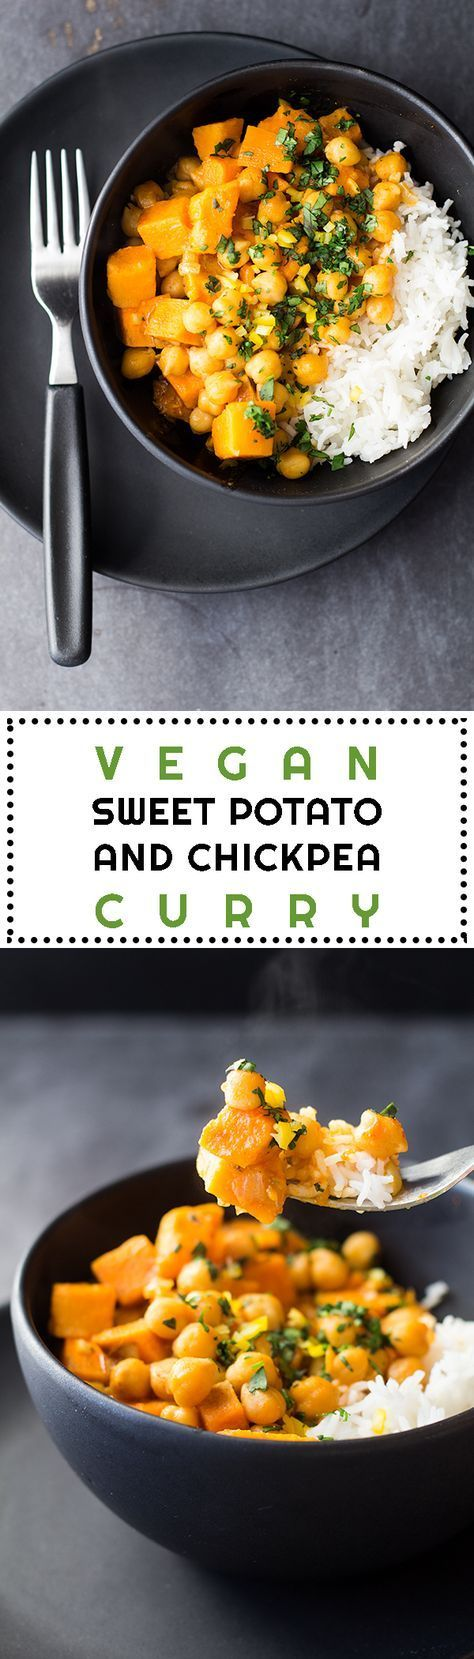 A quick and easy, soy-free, gluten-free, Thai Vegan Sweet Potato and Chickpea Curry for a meatless Monday full of flavor and nutrition!| healthy recipe ideas /xhealthyrecipex/ |